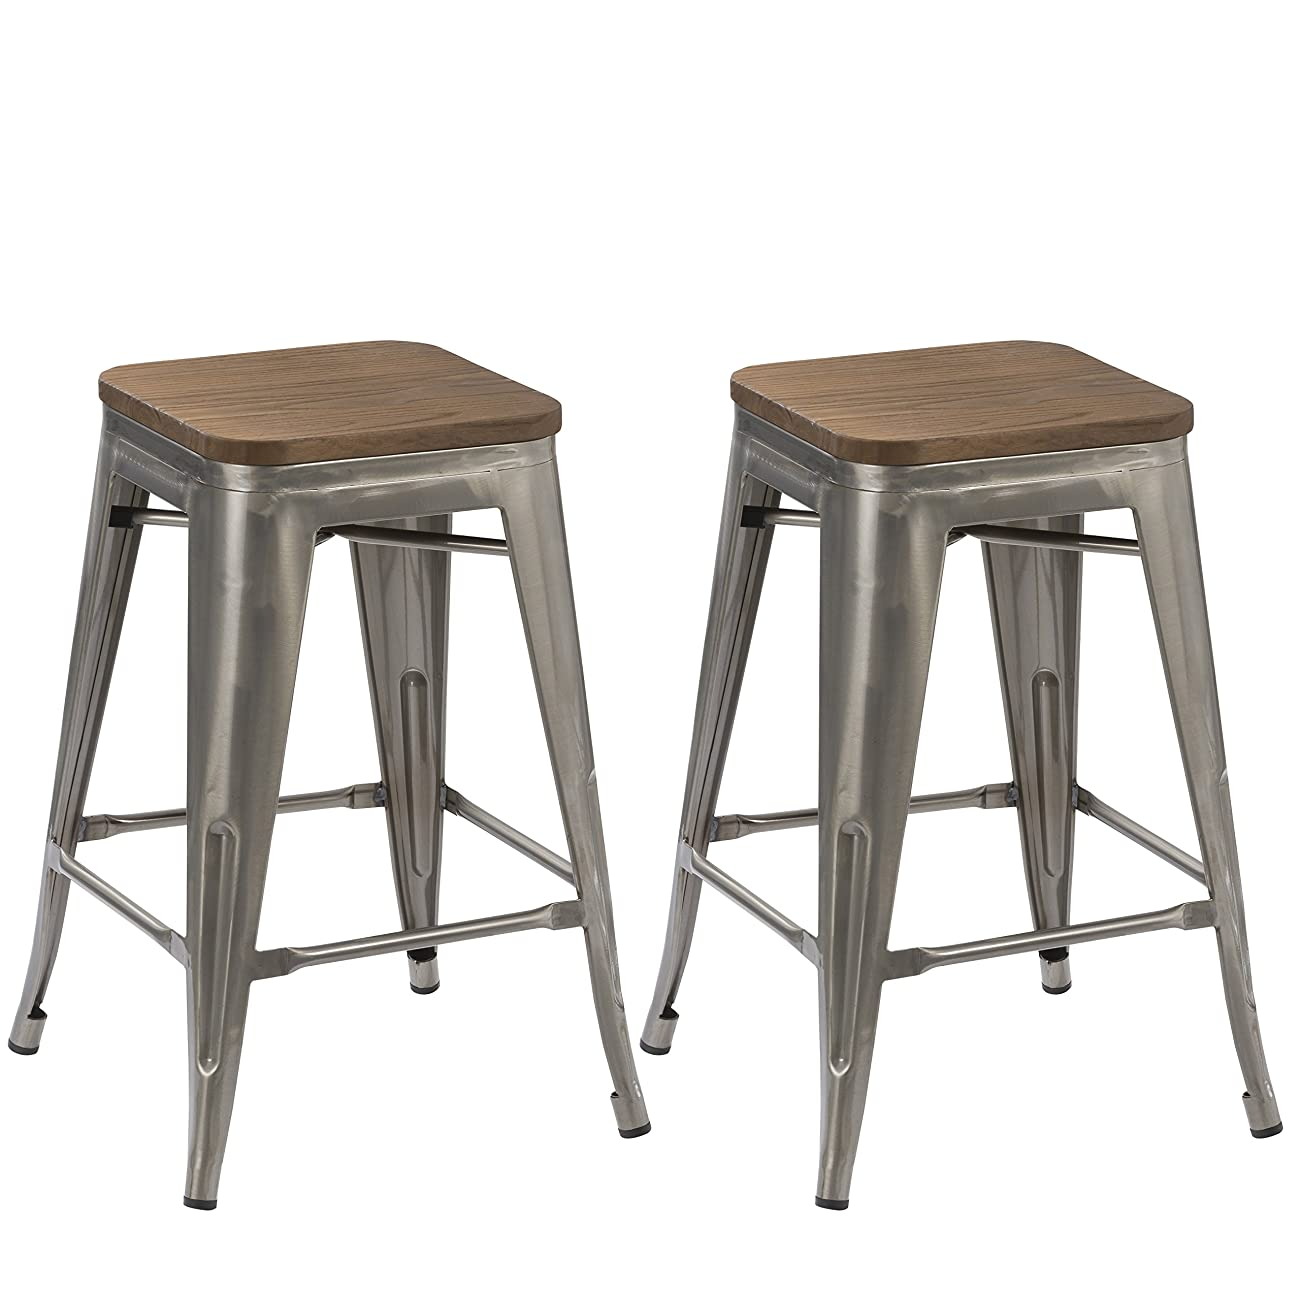 BTEXPERT 30-inch Industrial Stackable Tabouret Vintage Antique Rustic Clear Brush Distressed Metal Bar Stools wood top seat (Set of Two) 0